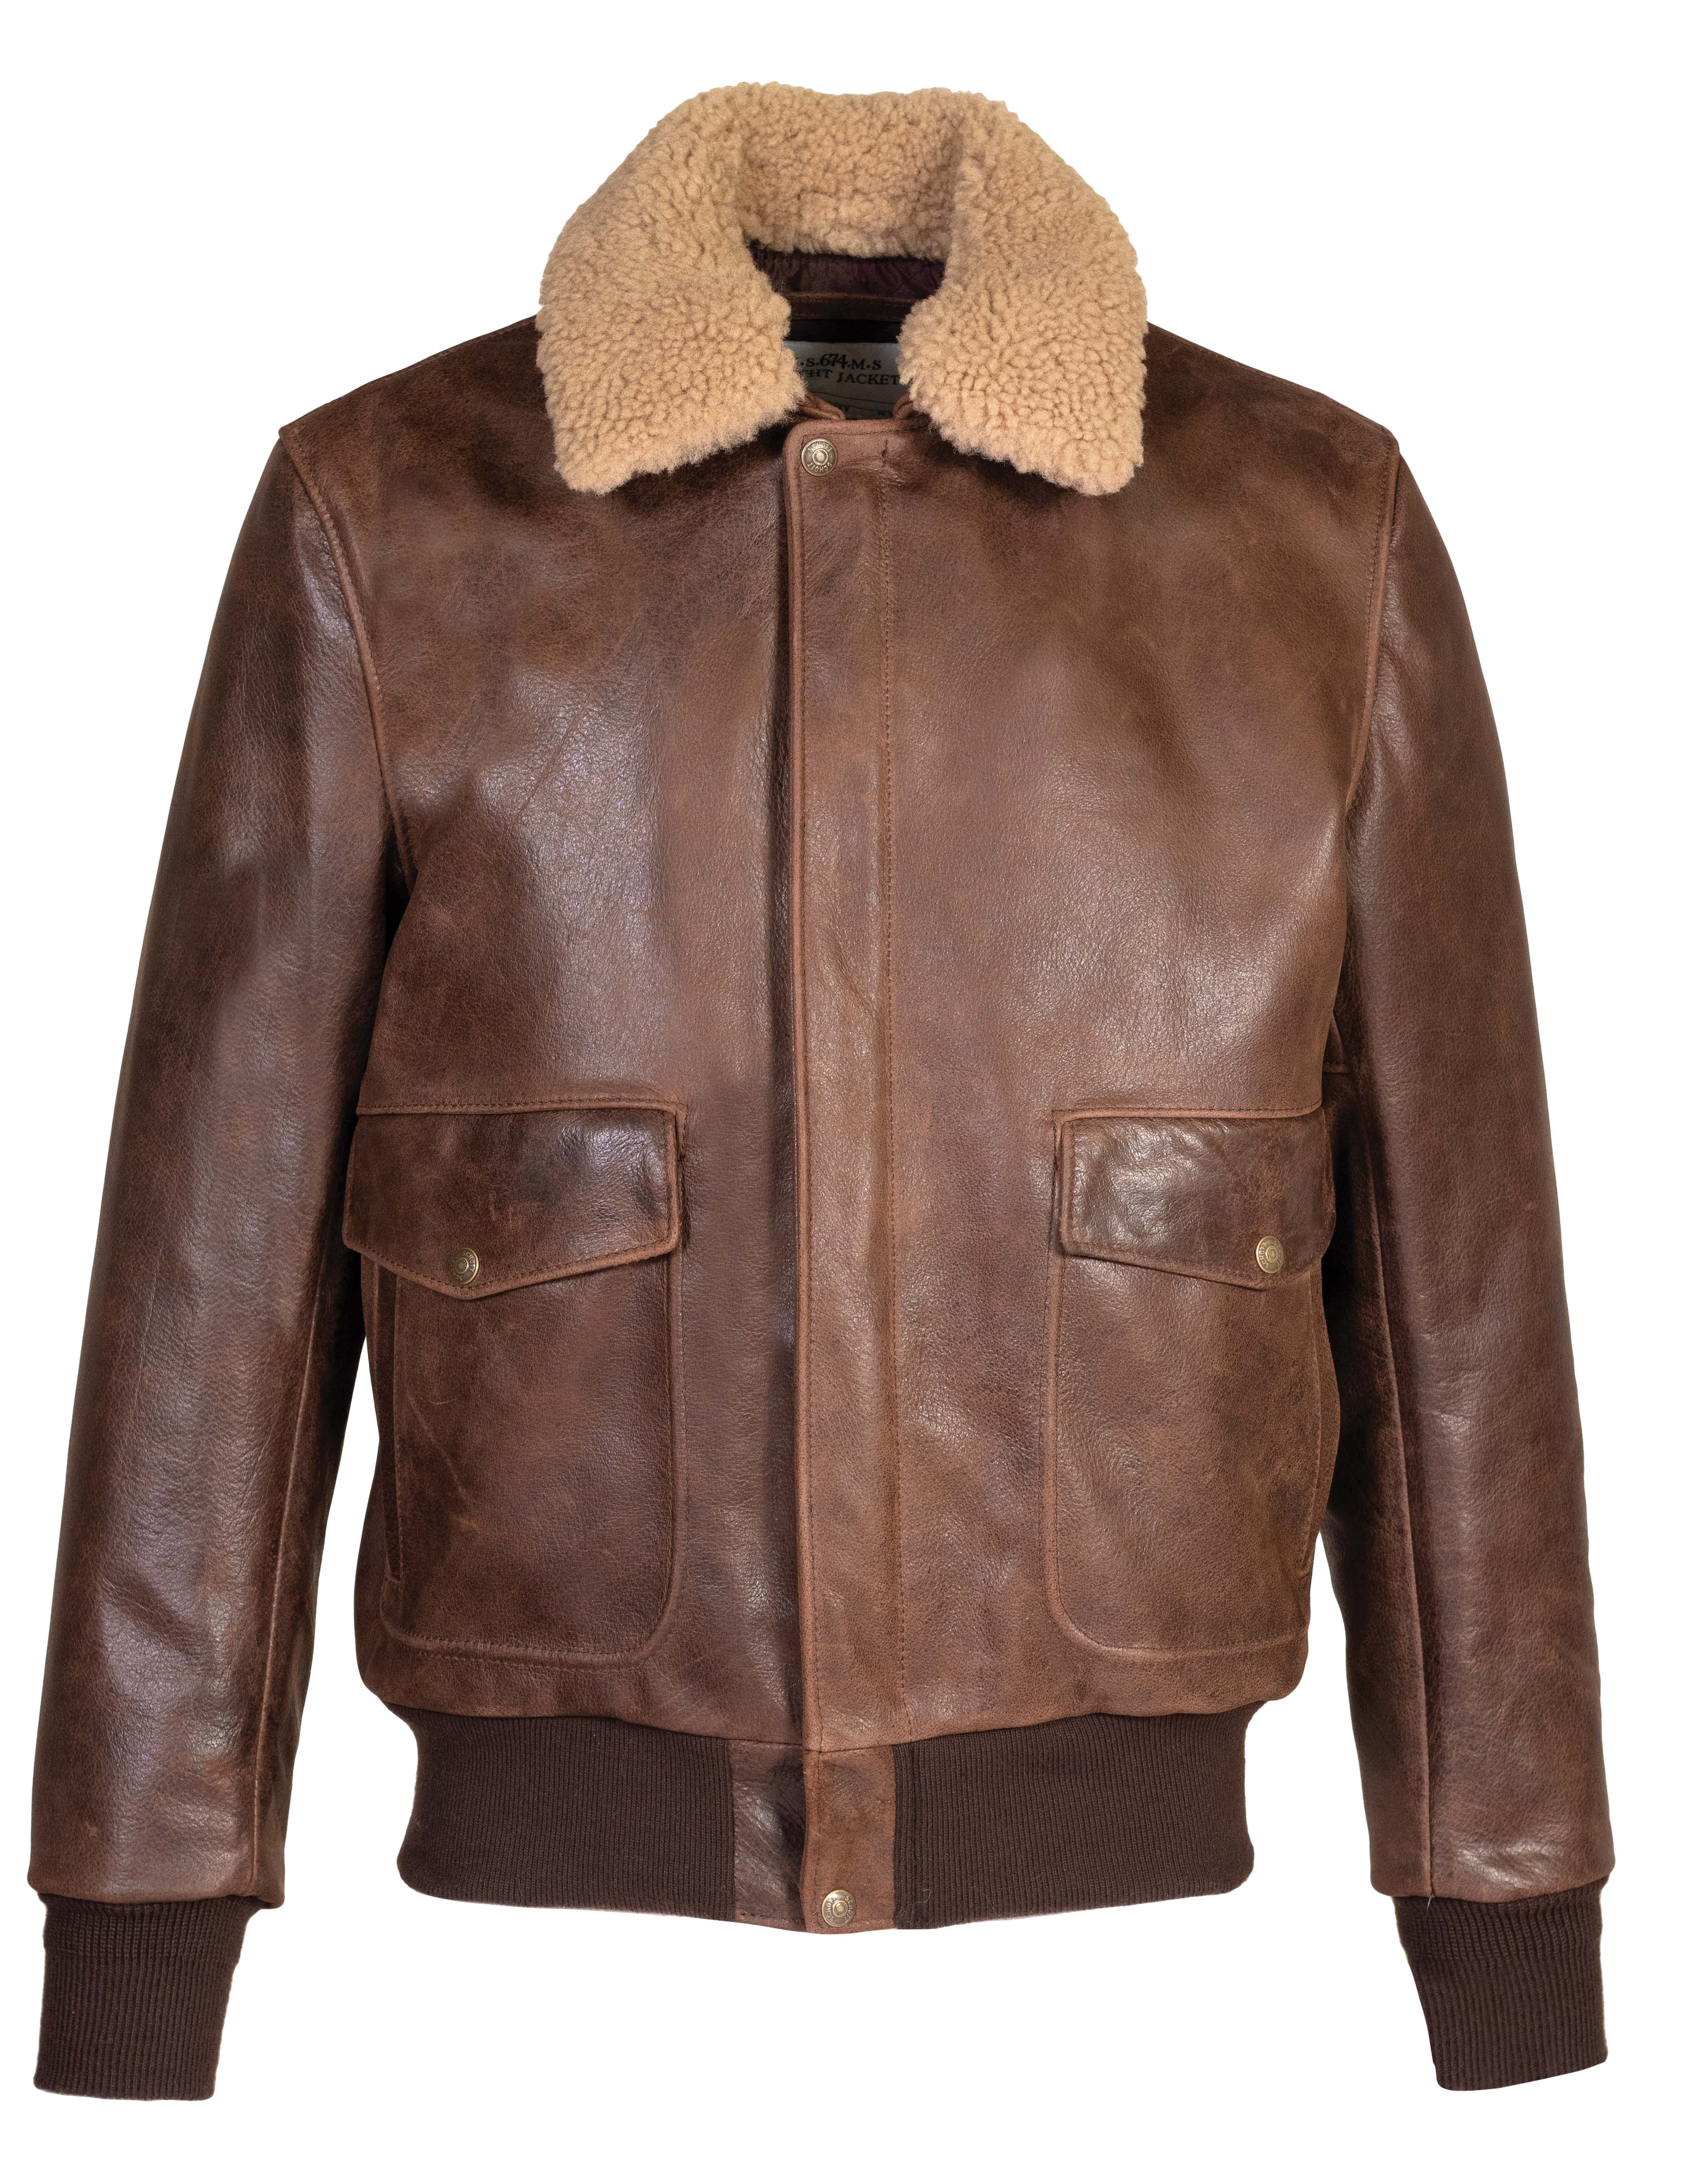 a31d8eb38 Schott N.Y.C. 594 Naked Buffalo Bomber Jacket - Brown Size XS